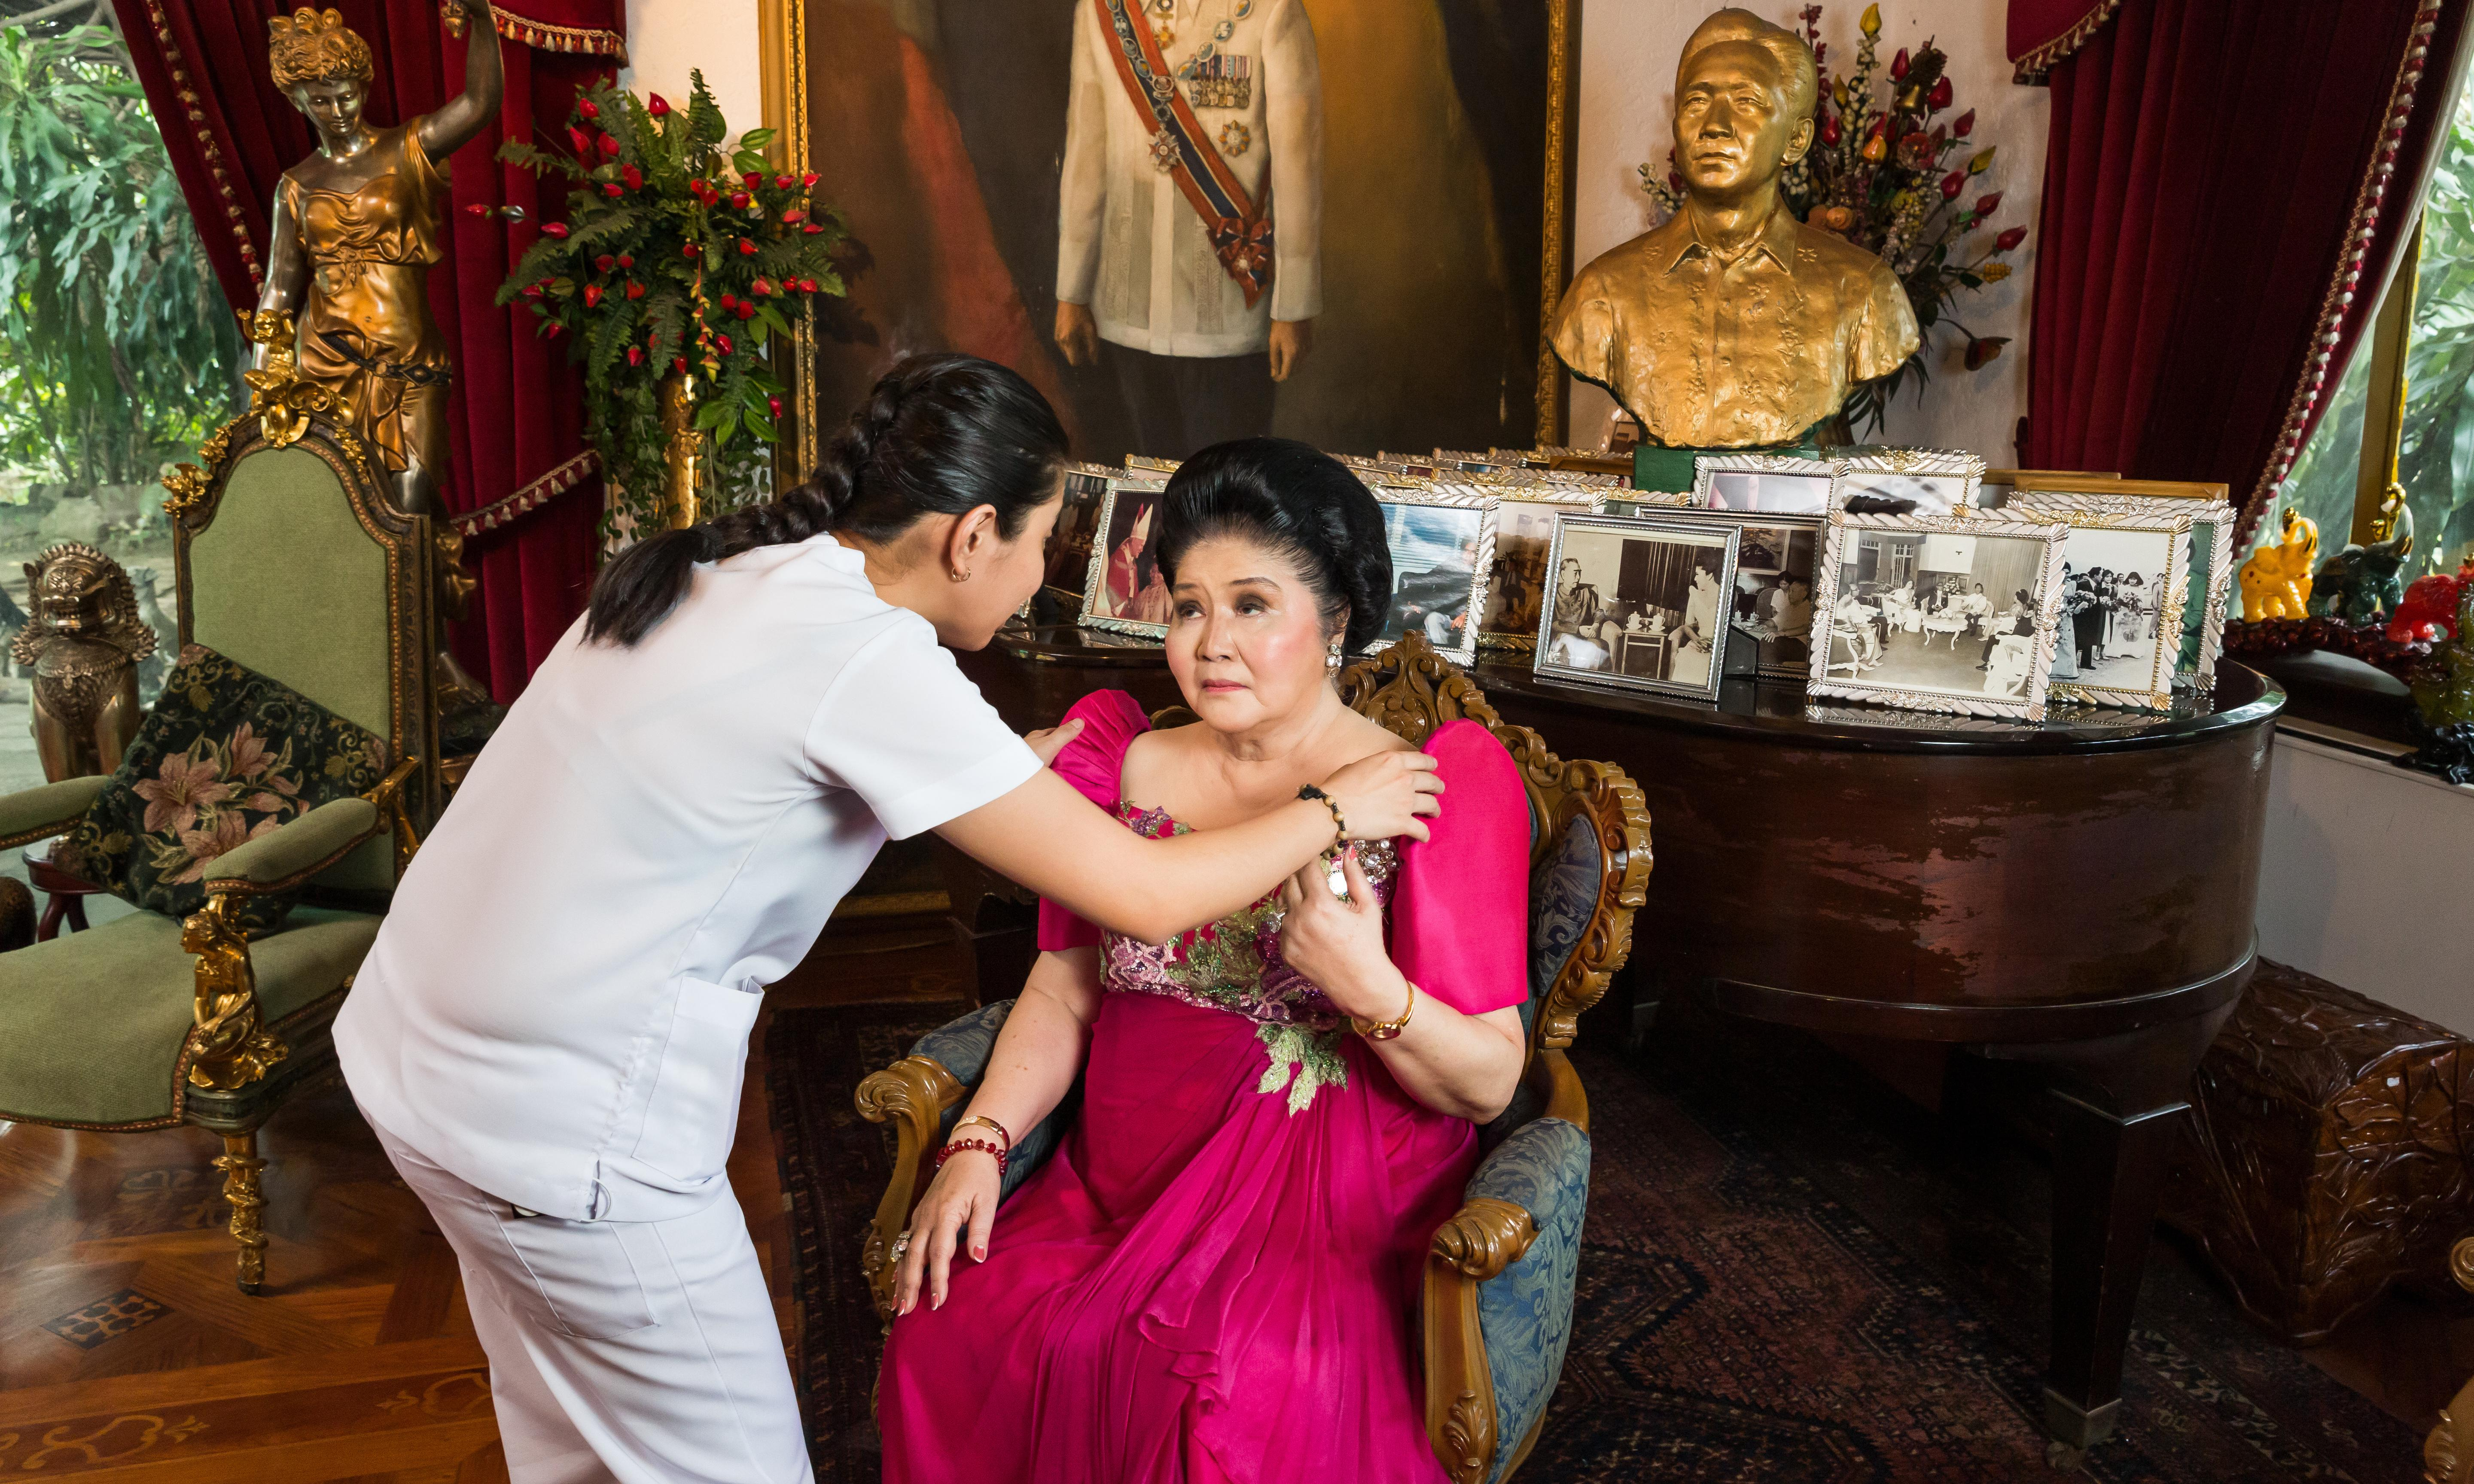 'She's an unreliable narrator': Lauren Greenfield on her Imelda Marcos documentary